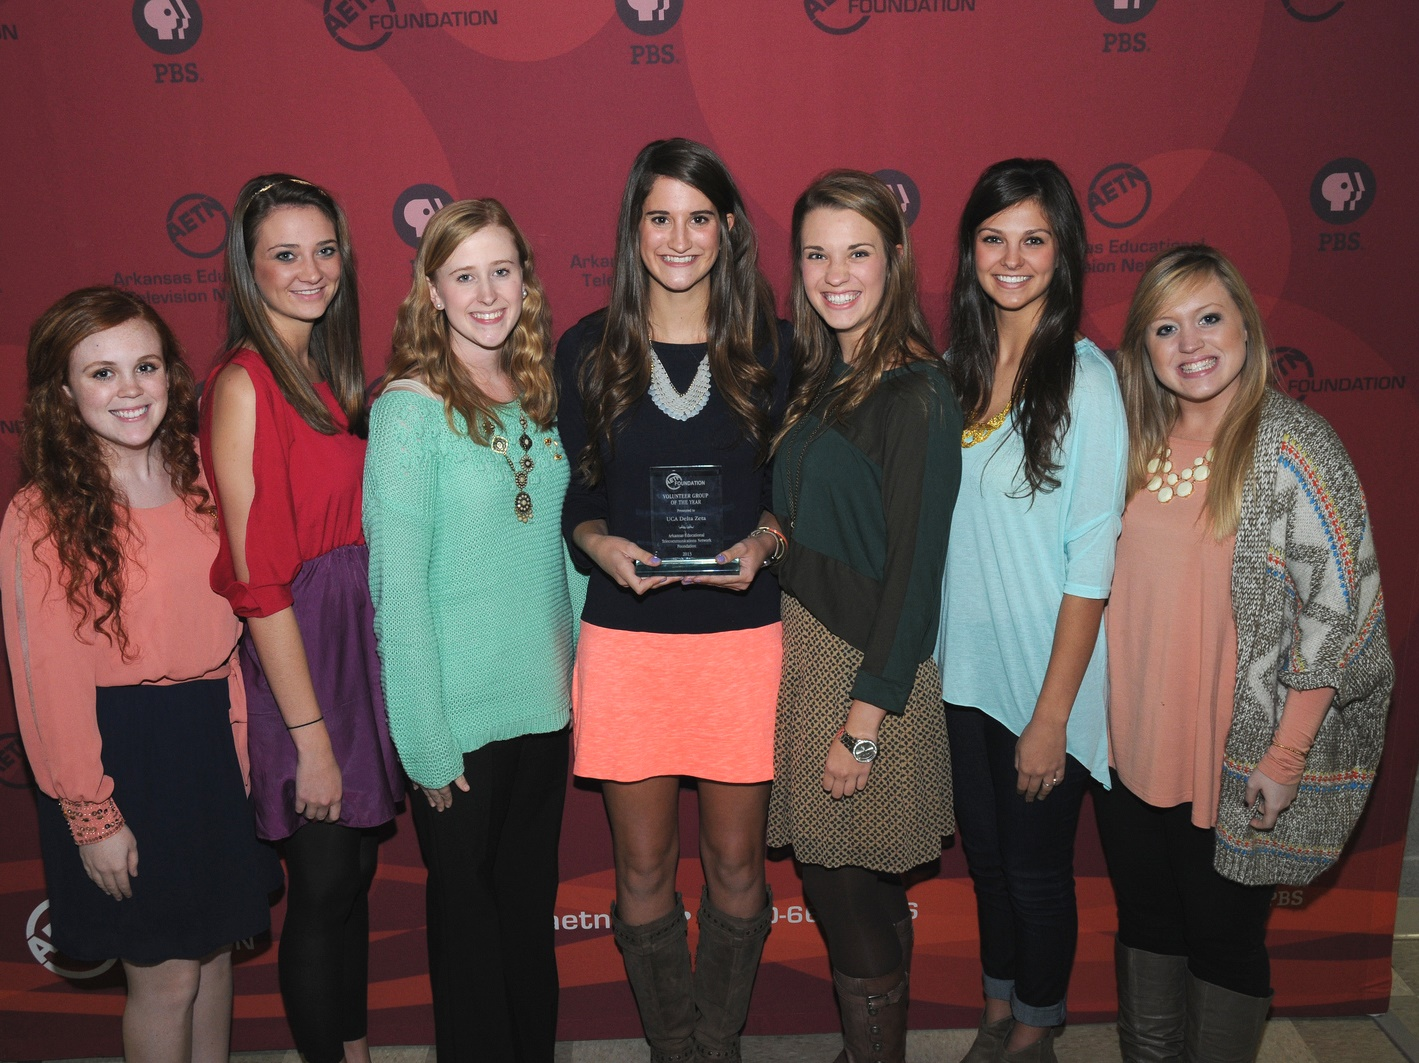 AETN Foundation Volunteer Group of the Year, UCA Delta Zeta